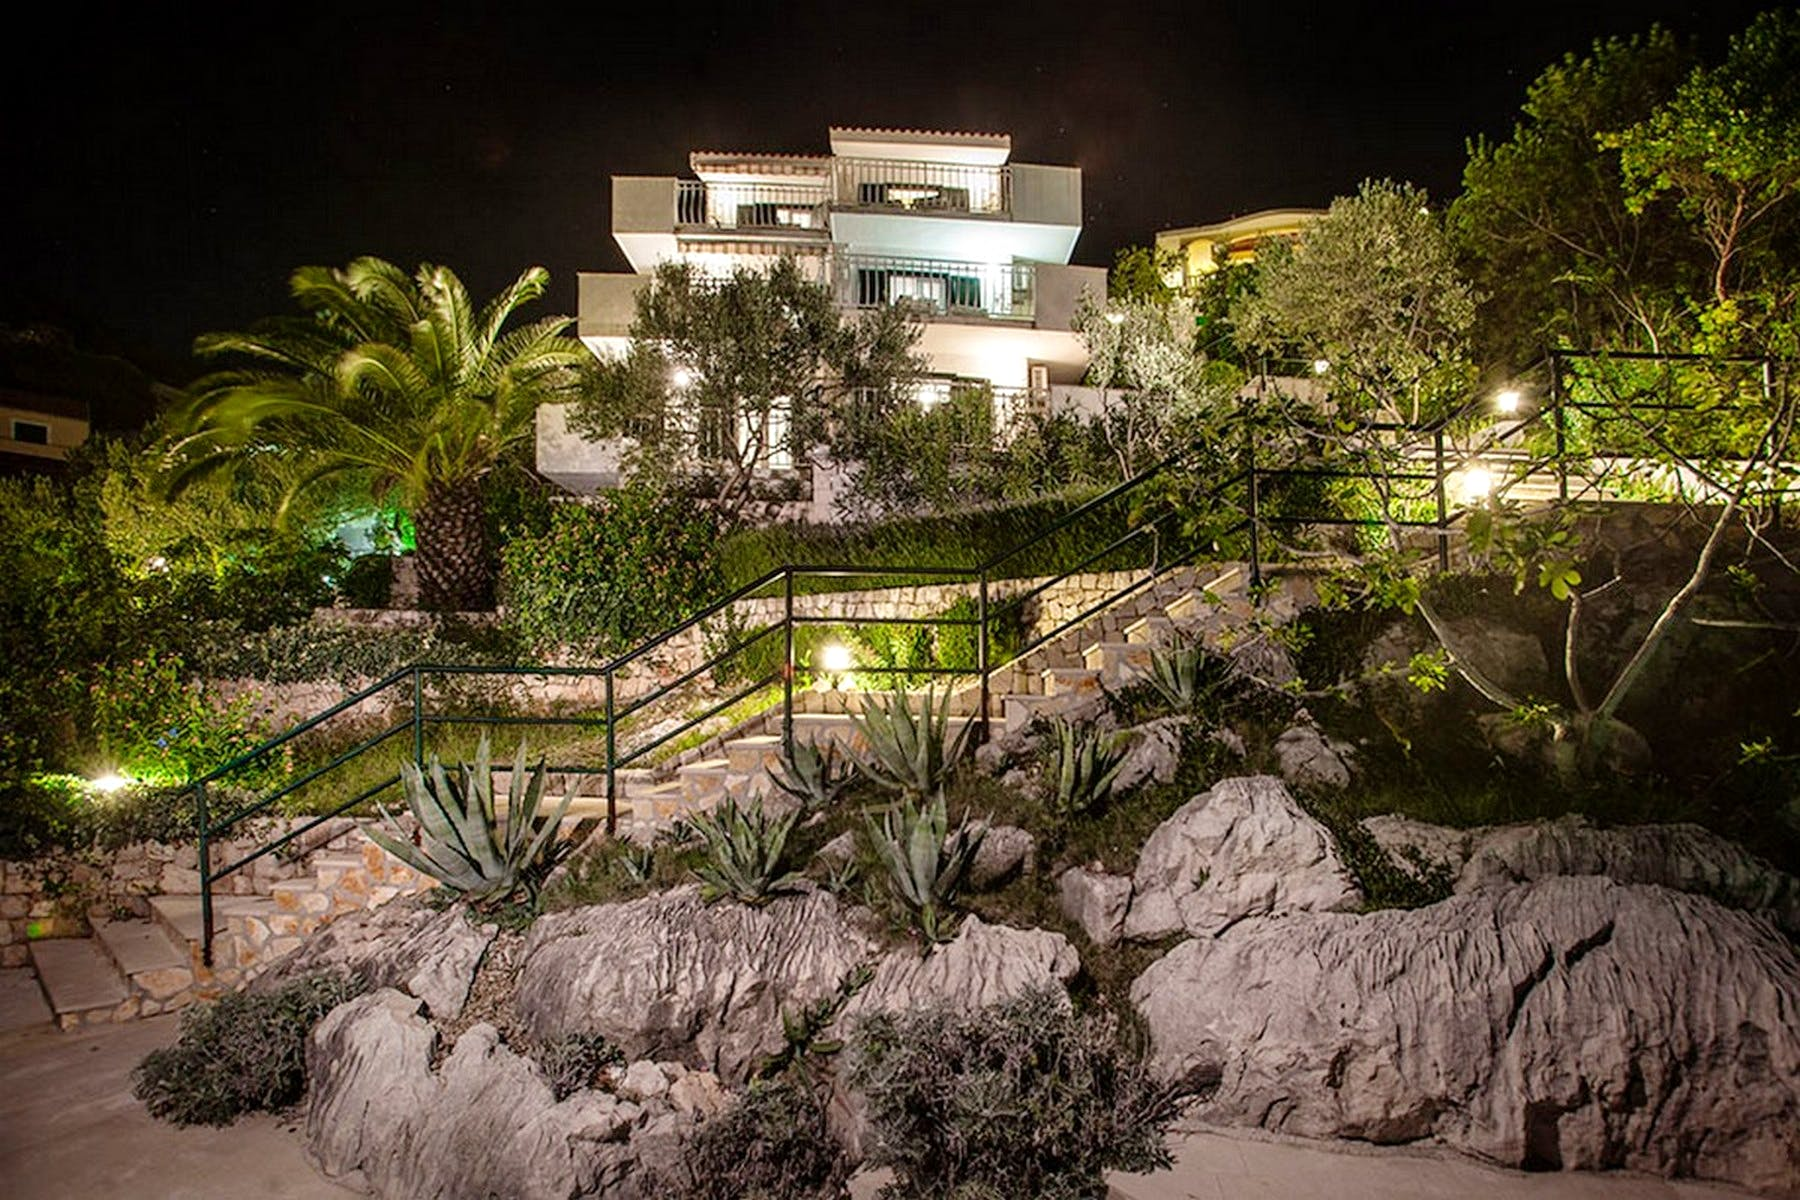 Amazing view of the villa by night